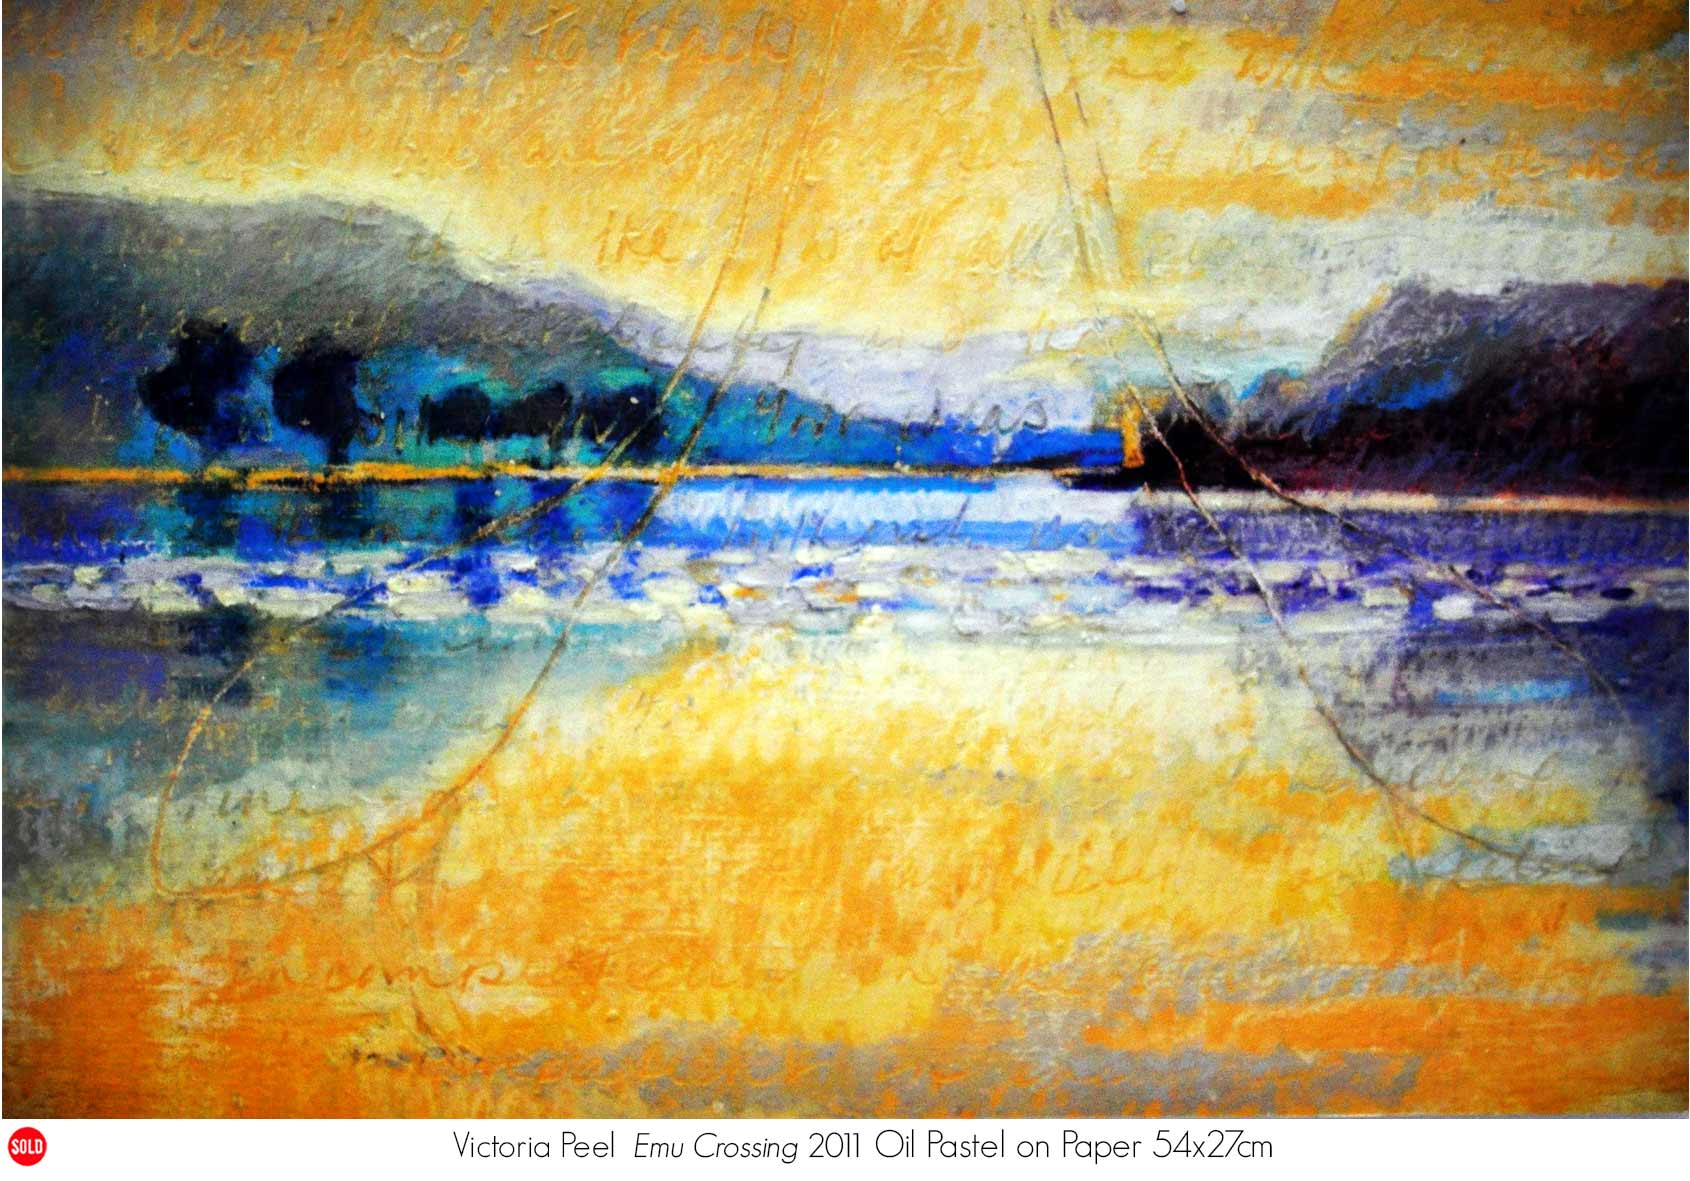 Victoria Peel - Collector's Choice 2011. Artsite Gallery,  26 November - 11 December 2011.